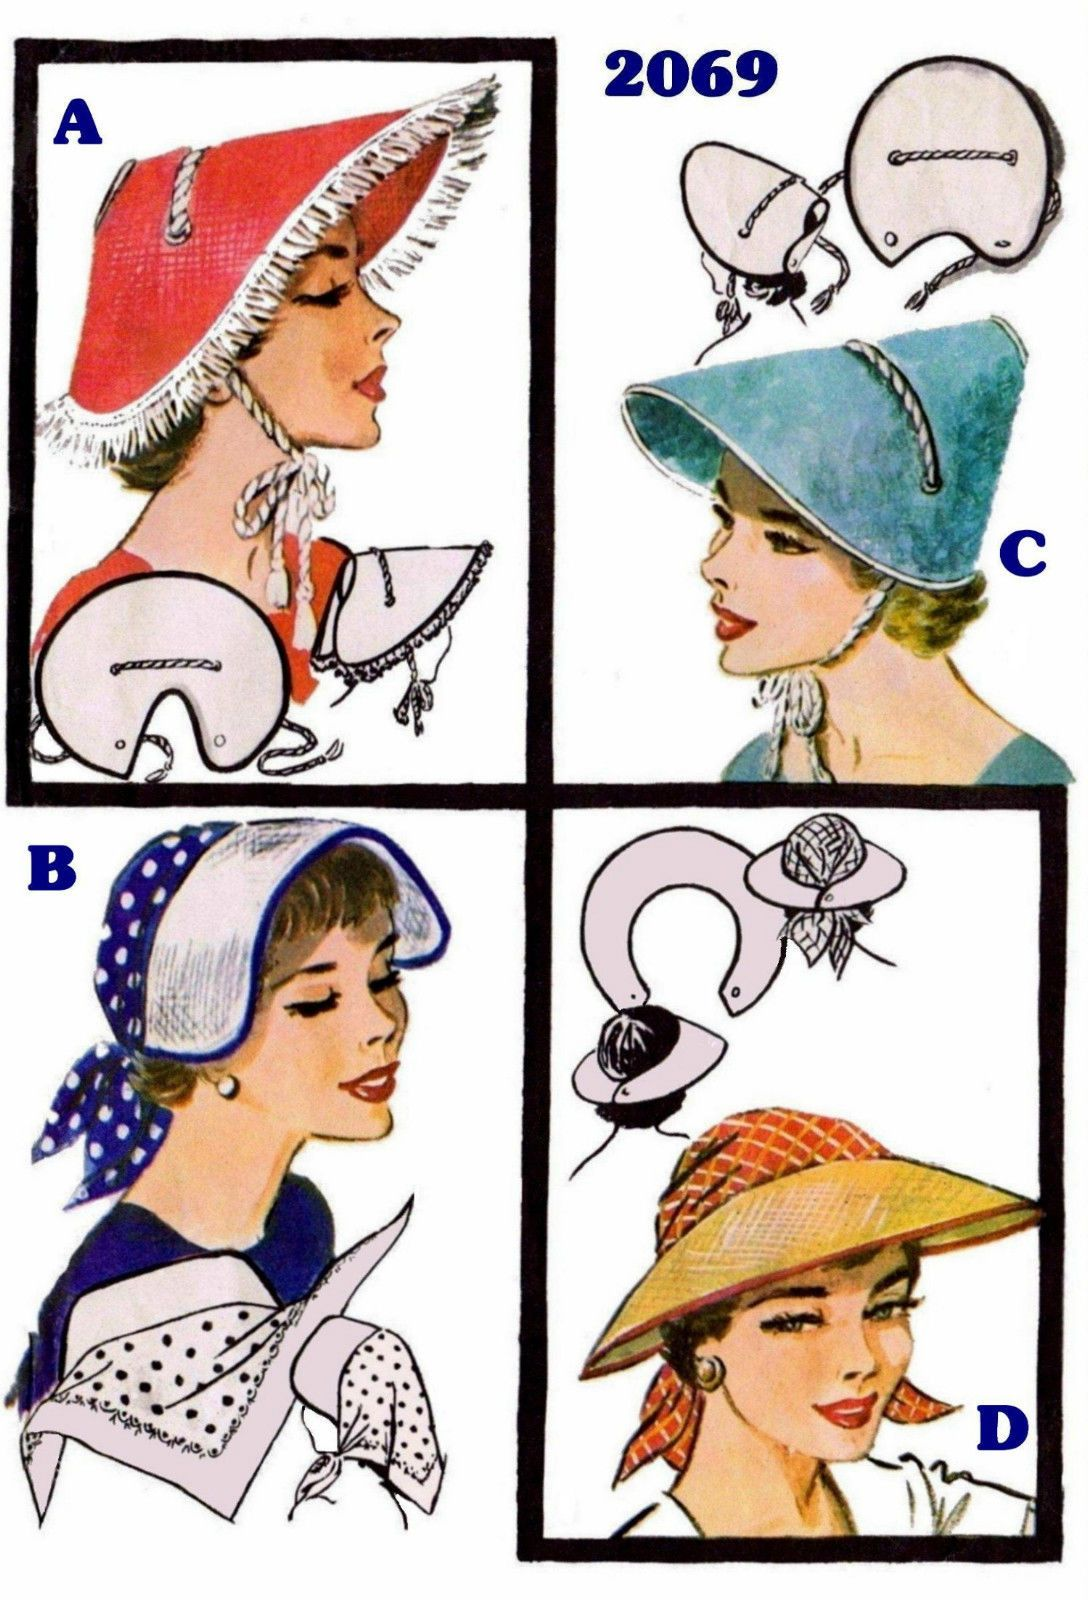 50s Millinary 4 Vint SUNBONNET VISOR HAT Fabric Material Sewing Sew ...